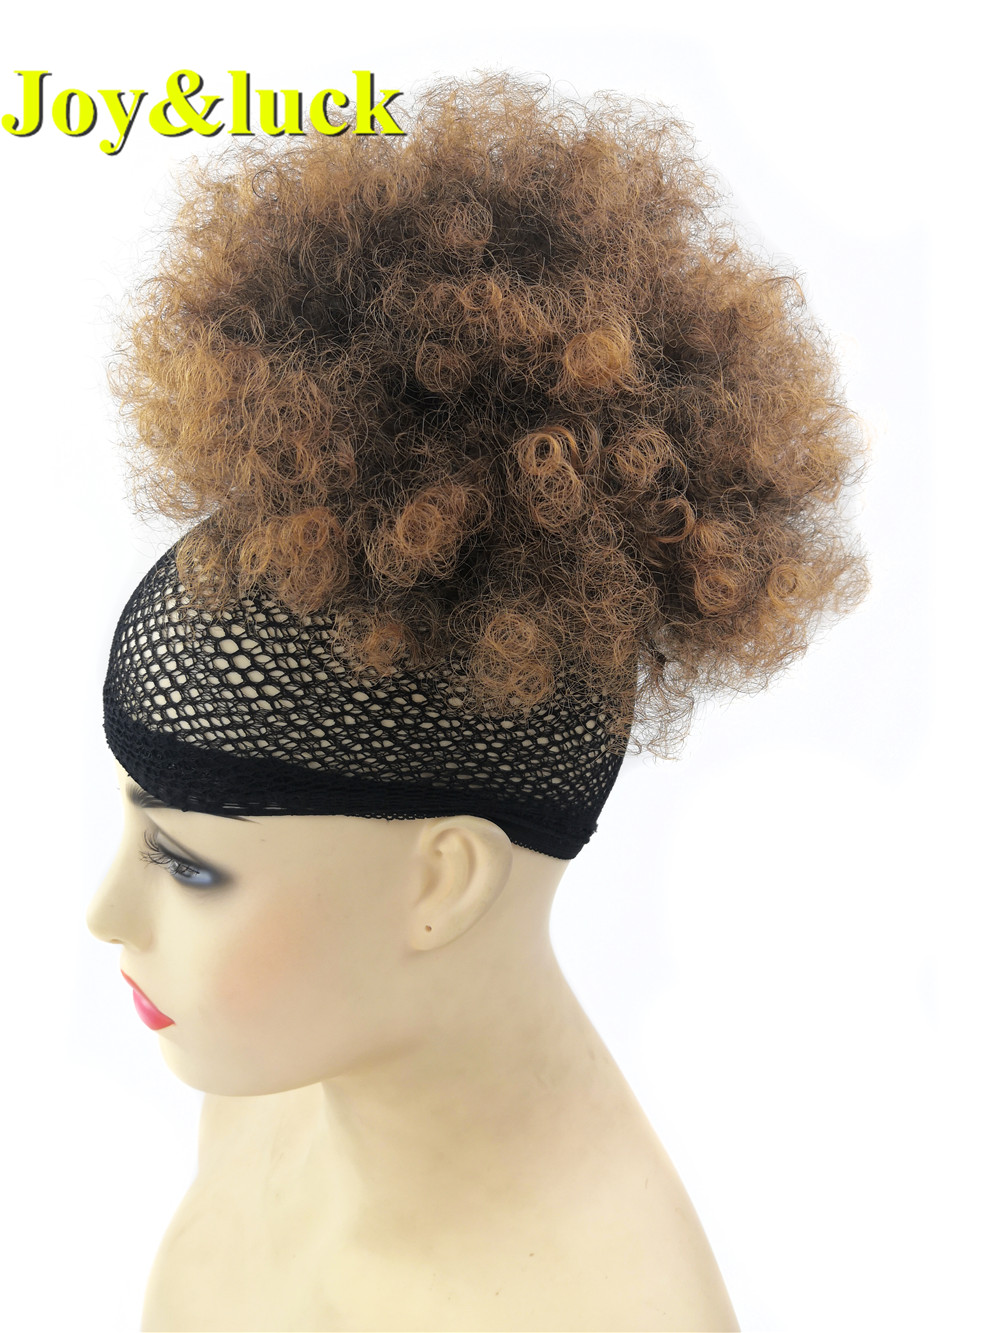 Joy&luck Short Afro Curly Drawstring Puff Chignon for Black Women Synthetic Curly Wig Ponytail with Clip in Brown Color